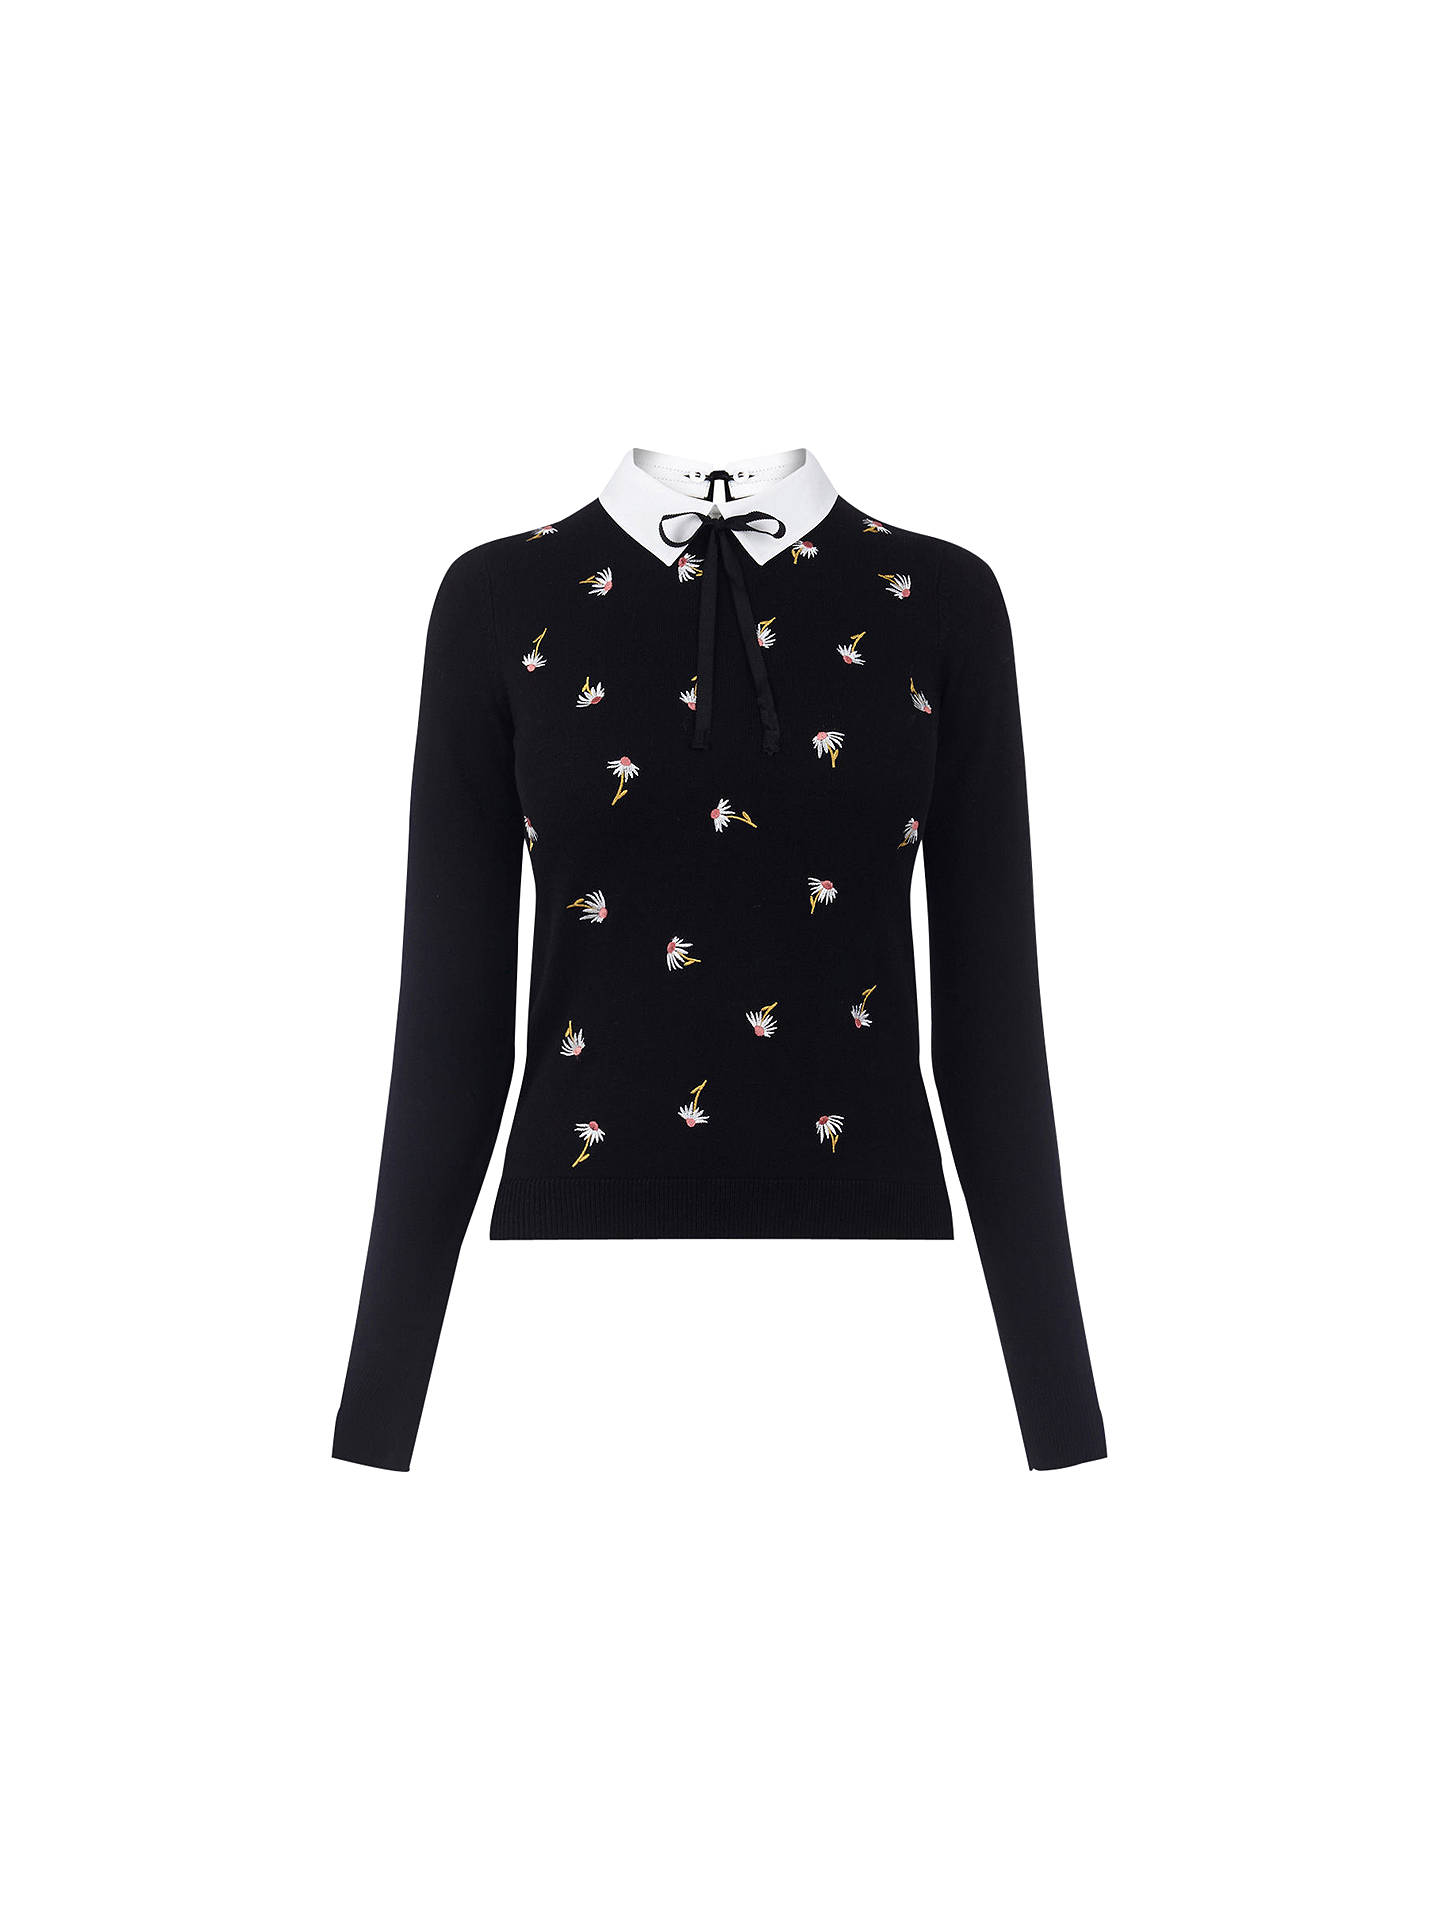 52596767154eda Buy Oasis Embroidered Collar Knit, Black, XS Online at johnlewis.com ...